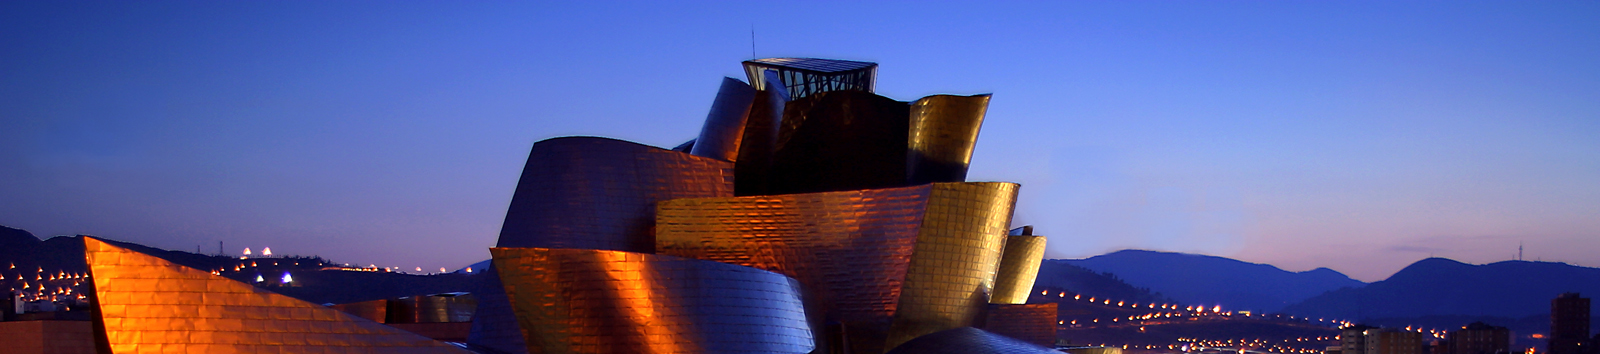 spain-luxury-travel-concierge-dmc-euskadi-bilbao-museu-guggenheim-autorization-ok-2